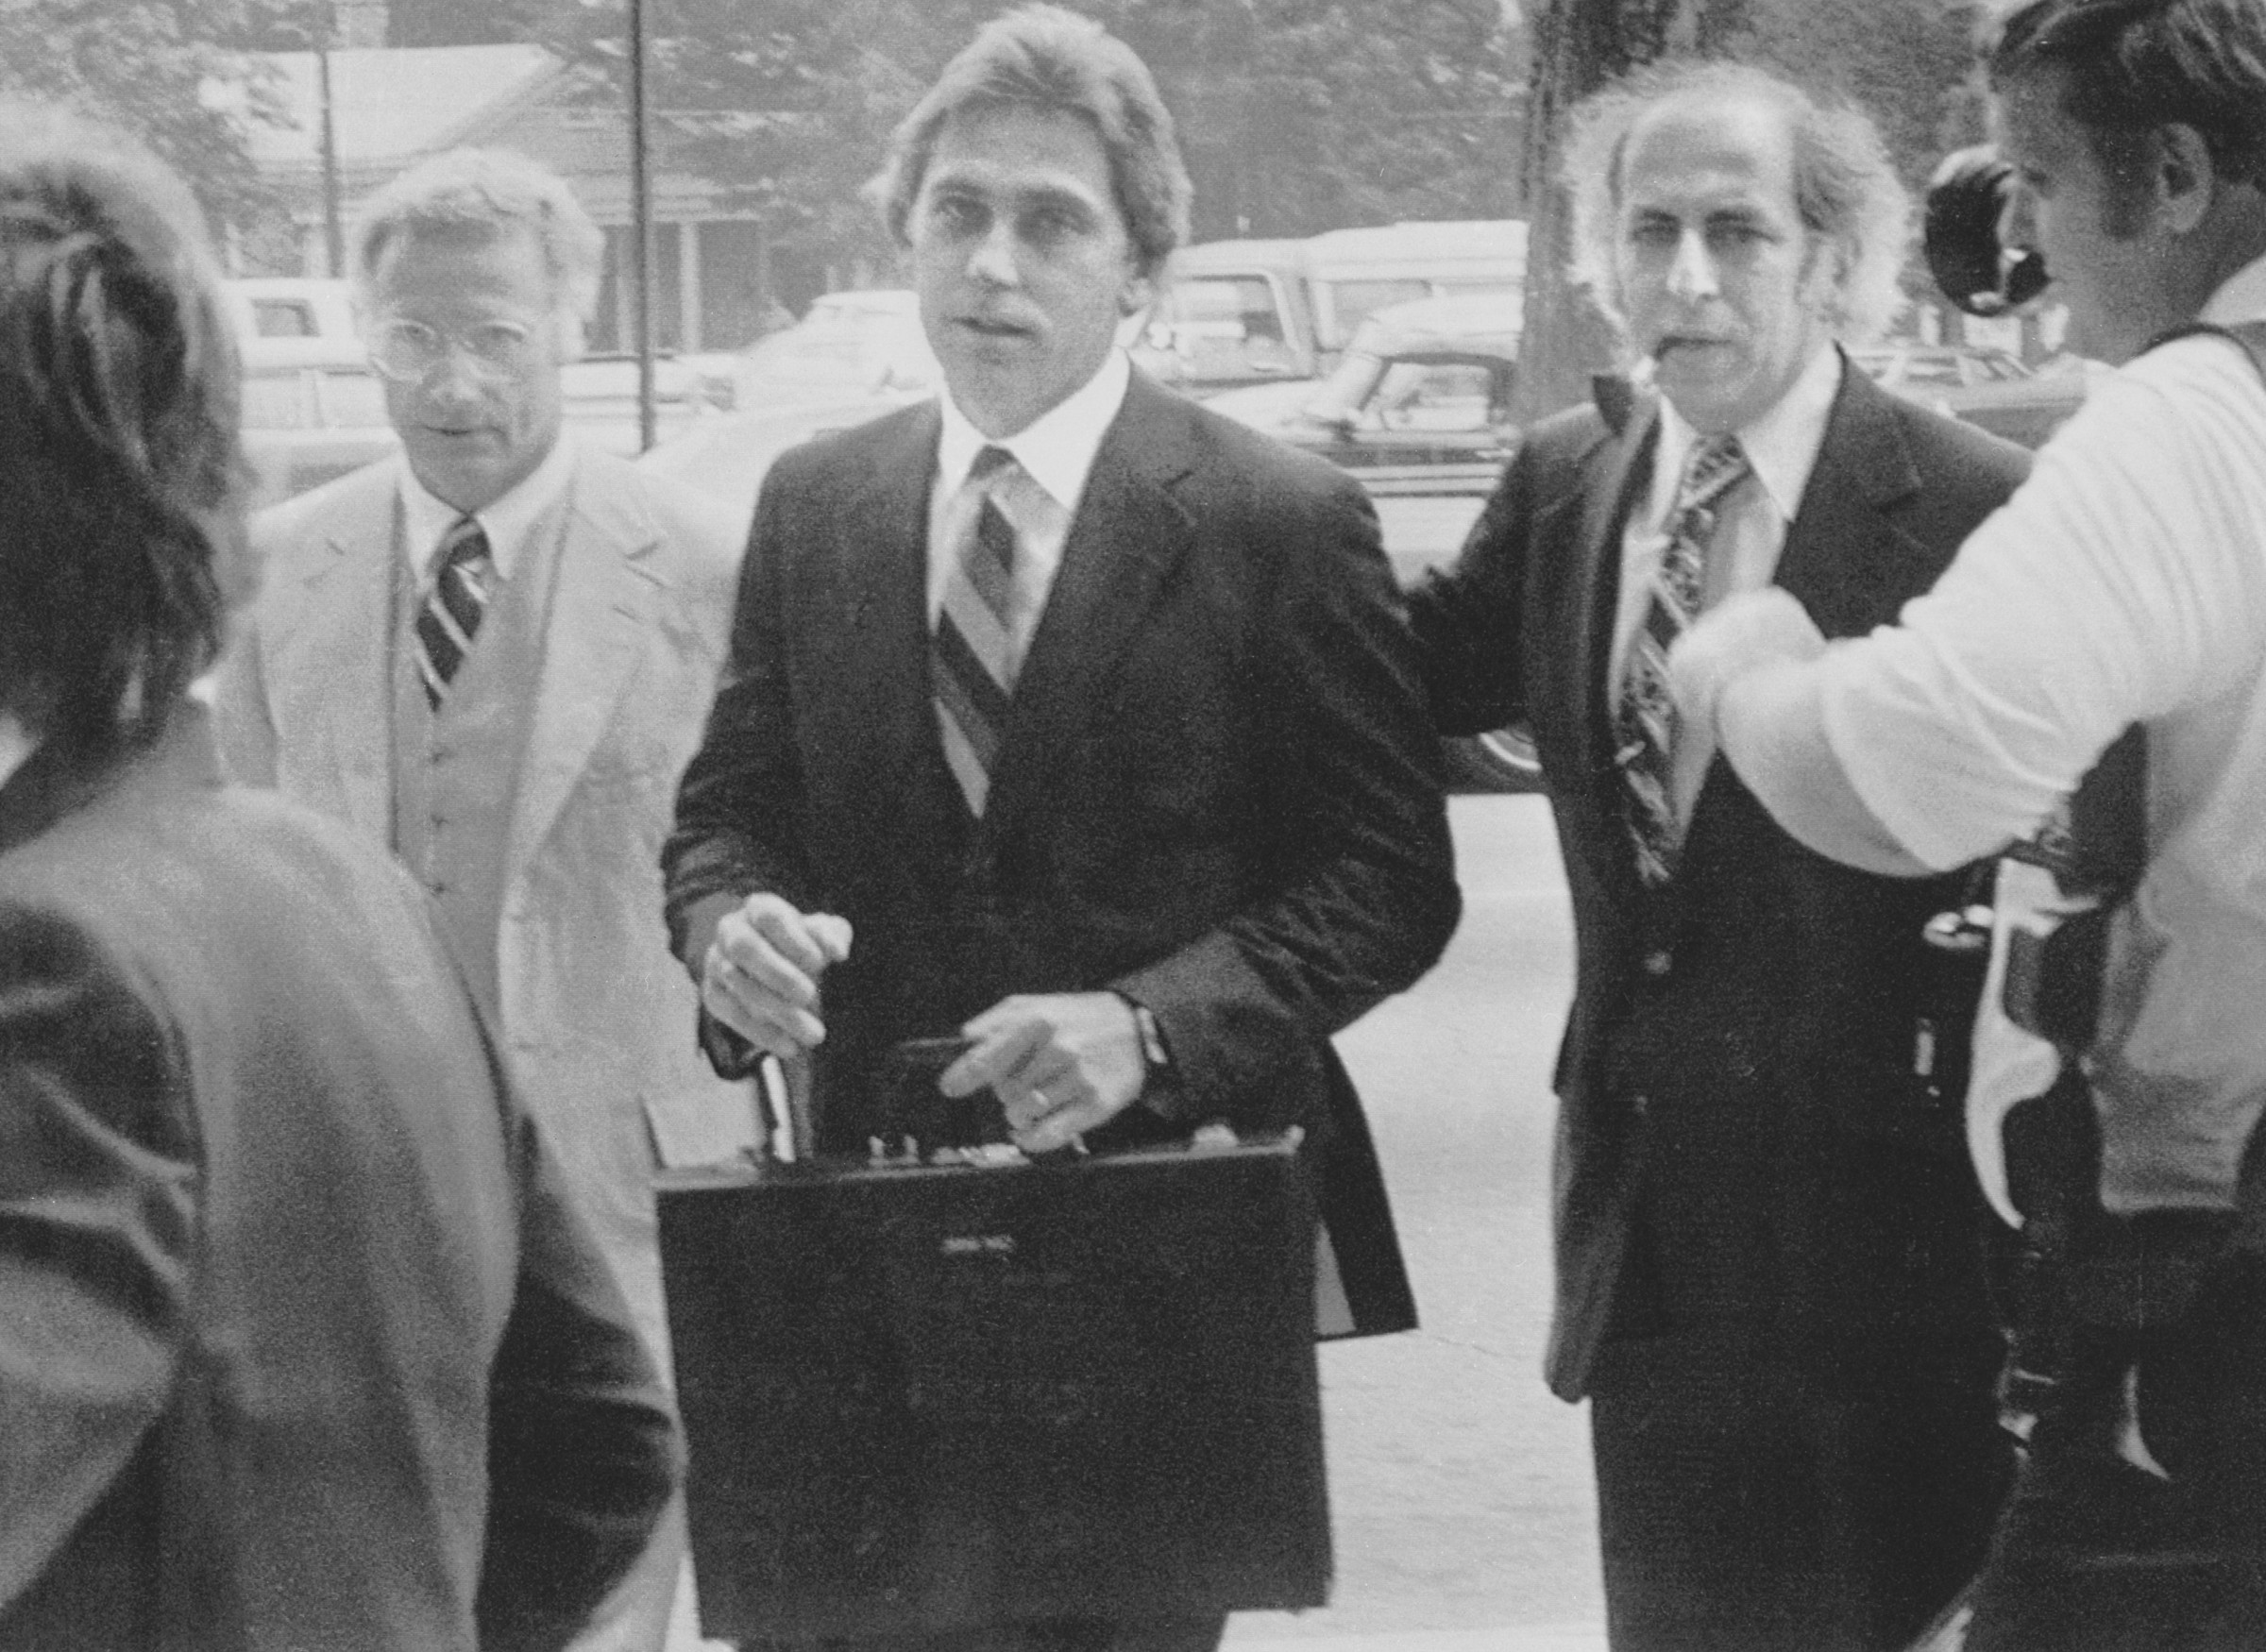 16 Jul 1979, Raleigh, North Carolina, USA --- Original caption: July 16, 1979 - Raleigh, North Carolina: Dr. Jeffrey MacDonald (center), nine and a half years after his pregnant wife and two young daughters were killed in a Fort Bragg, North Carolina apartment, entered the Federal Courthouse to stand trial for their deaths. With him are attorneys Wade Smith (left) and Bernard Segal (right). The former Army doctor told newsmen he believes he will be found innocent. The trial was expected to last six to eight weeks. --- Image by © Bettmann/CORBIS